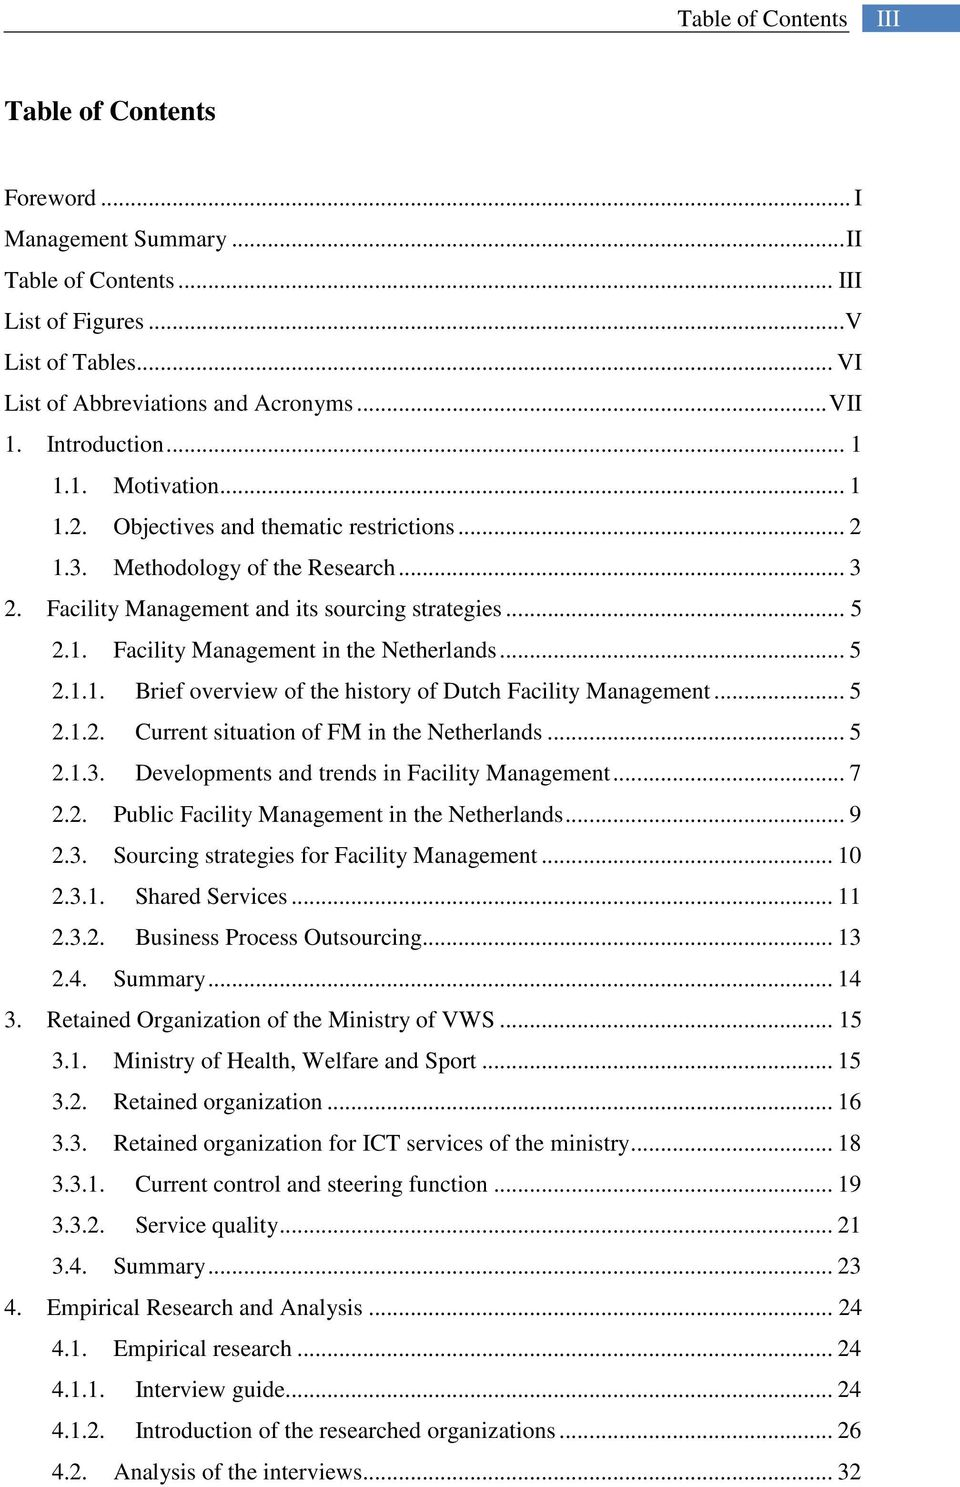 .. 5 2.1.1. Brief overview of the history of Dutch Facility Management... 5 2.1.2. Current situation of FM in the Netherlands... 5 2.1.3. Developments and trends in Facility Management... 7 2.2. Public Facility Management in the Netherlands.